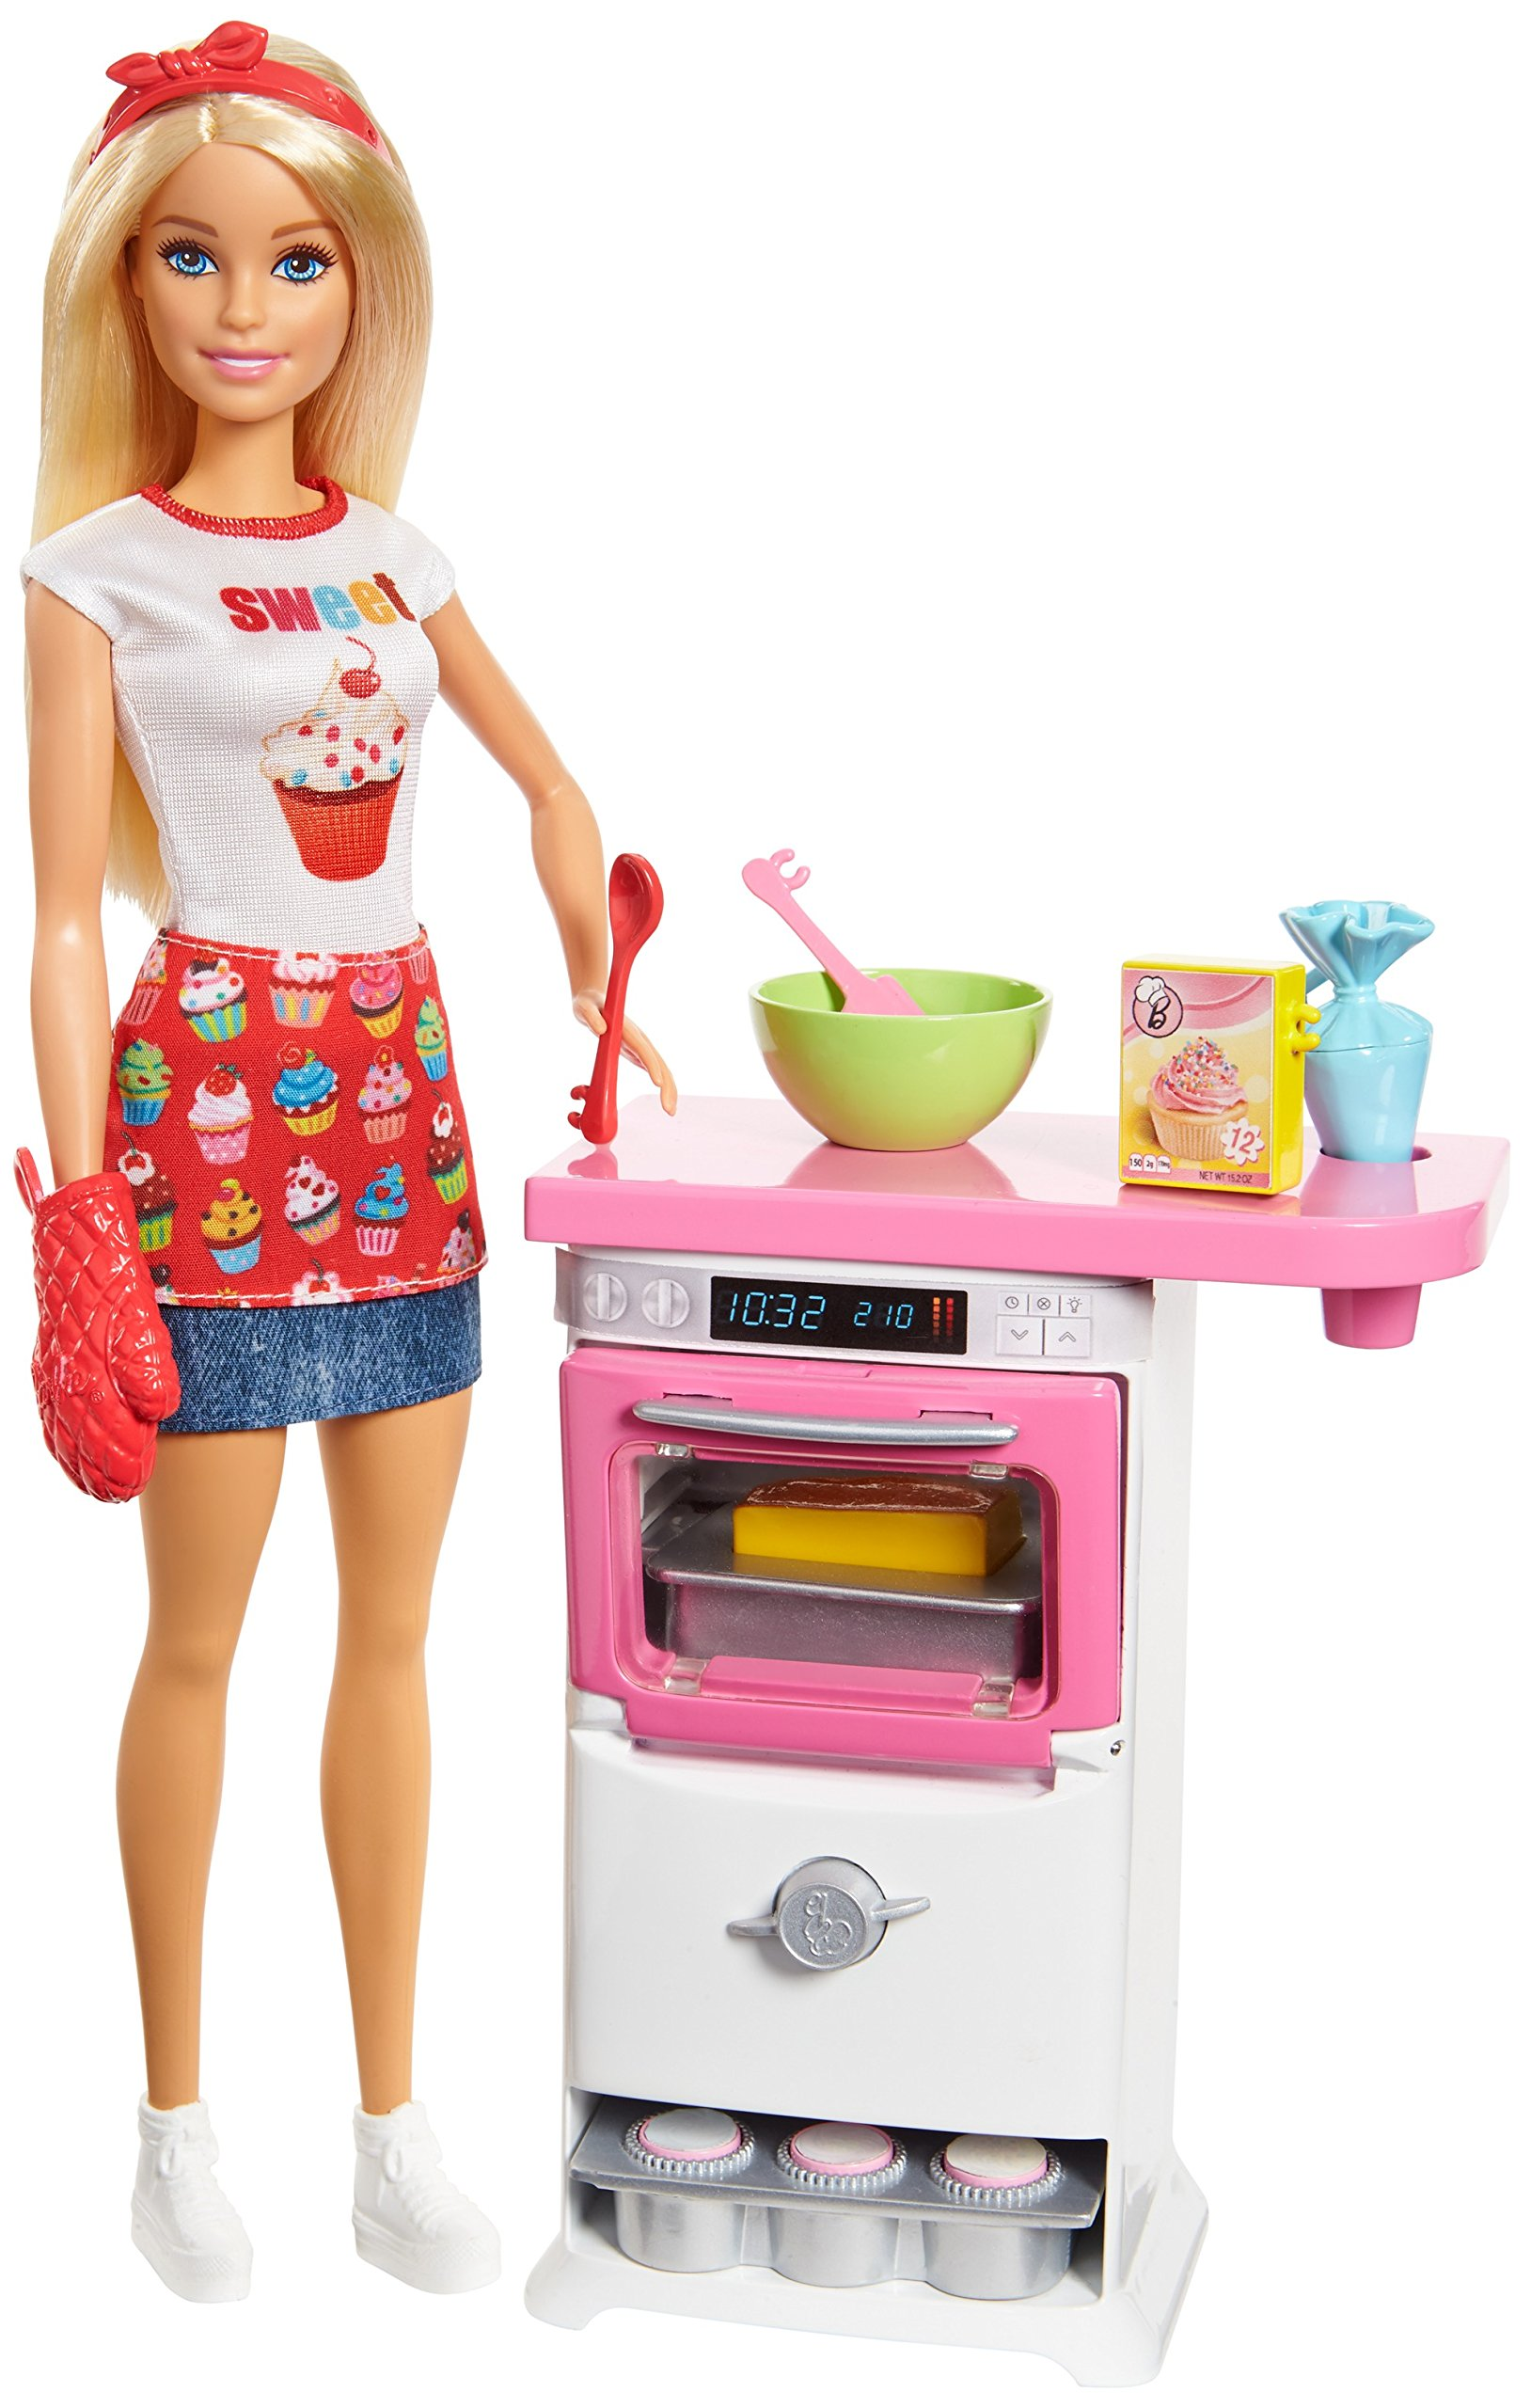 Barbie Bakery Chef Doll and Playset with Oven and Rising Food [Amazon Exclusive]